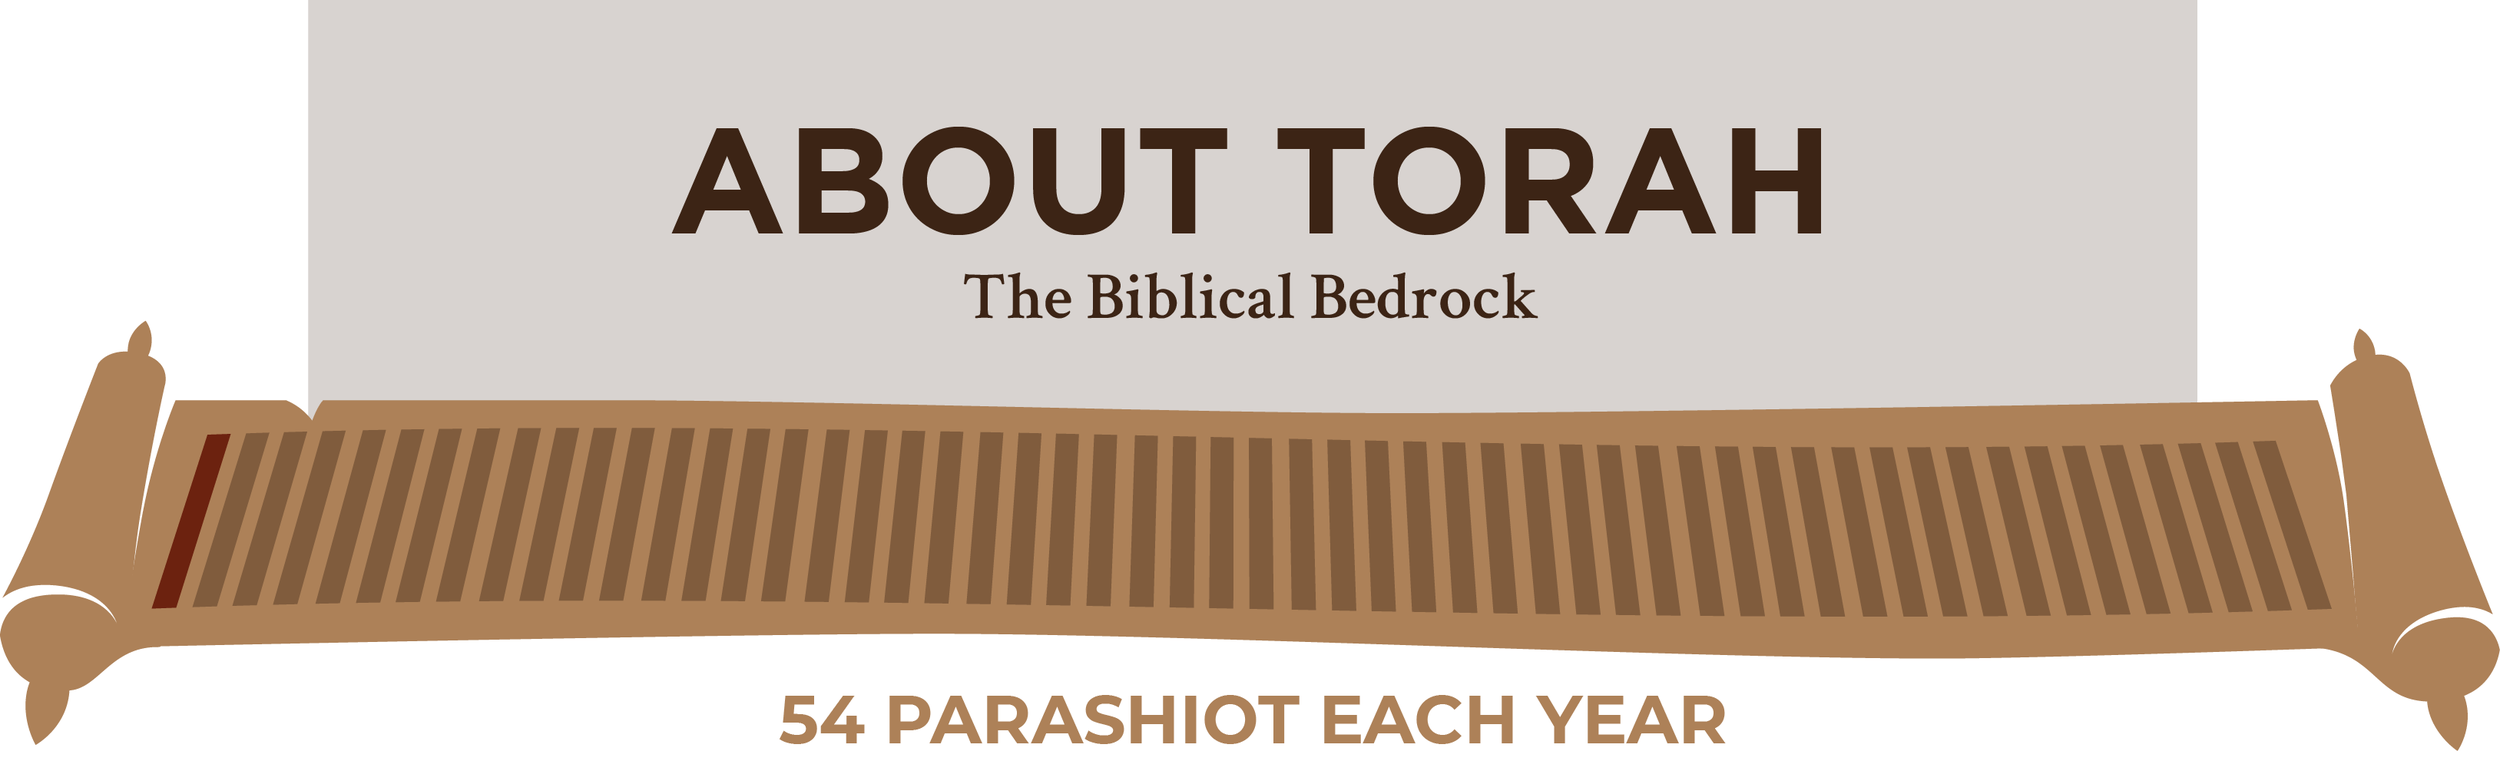 About Torah.png